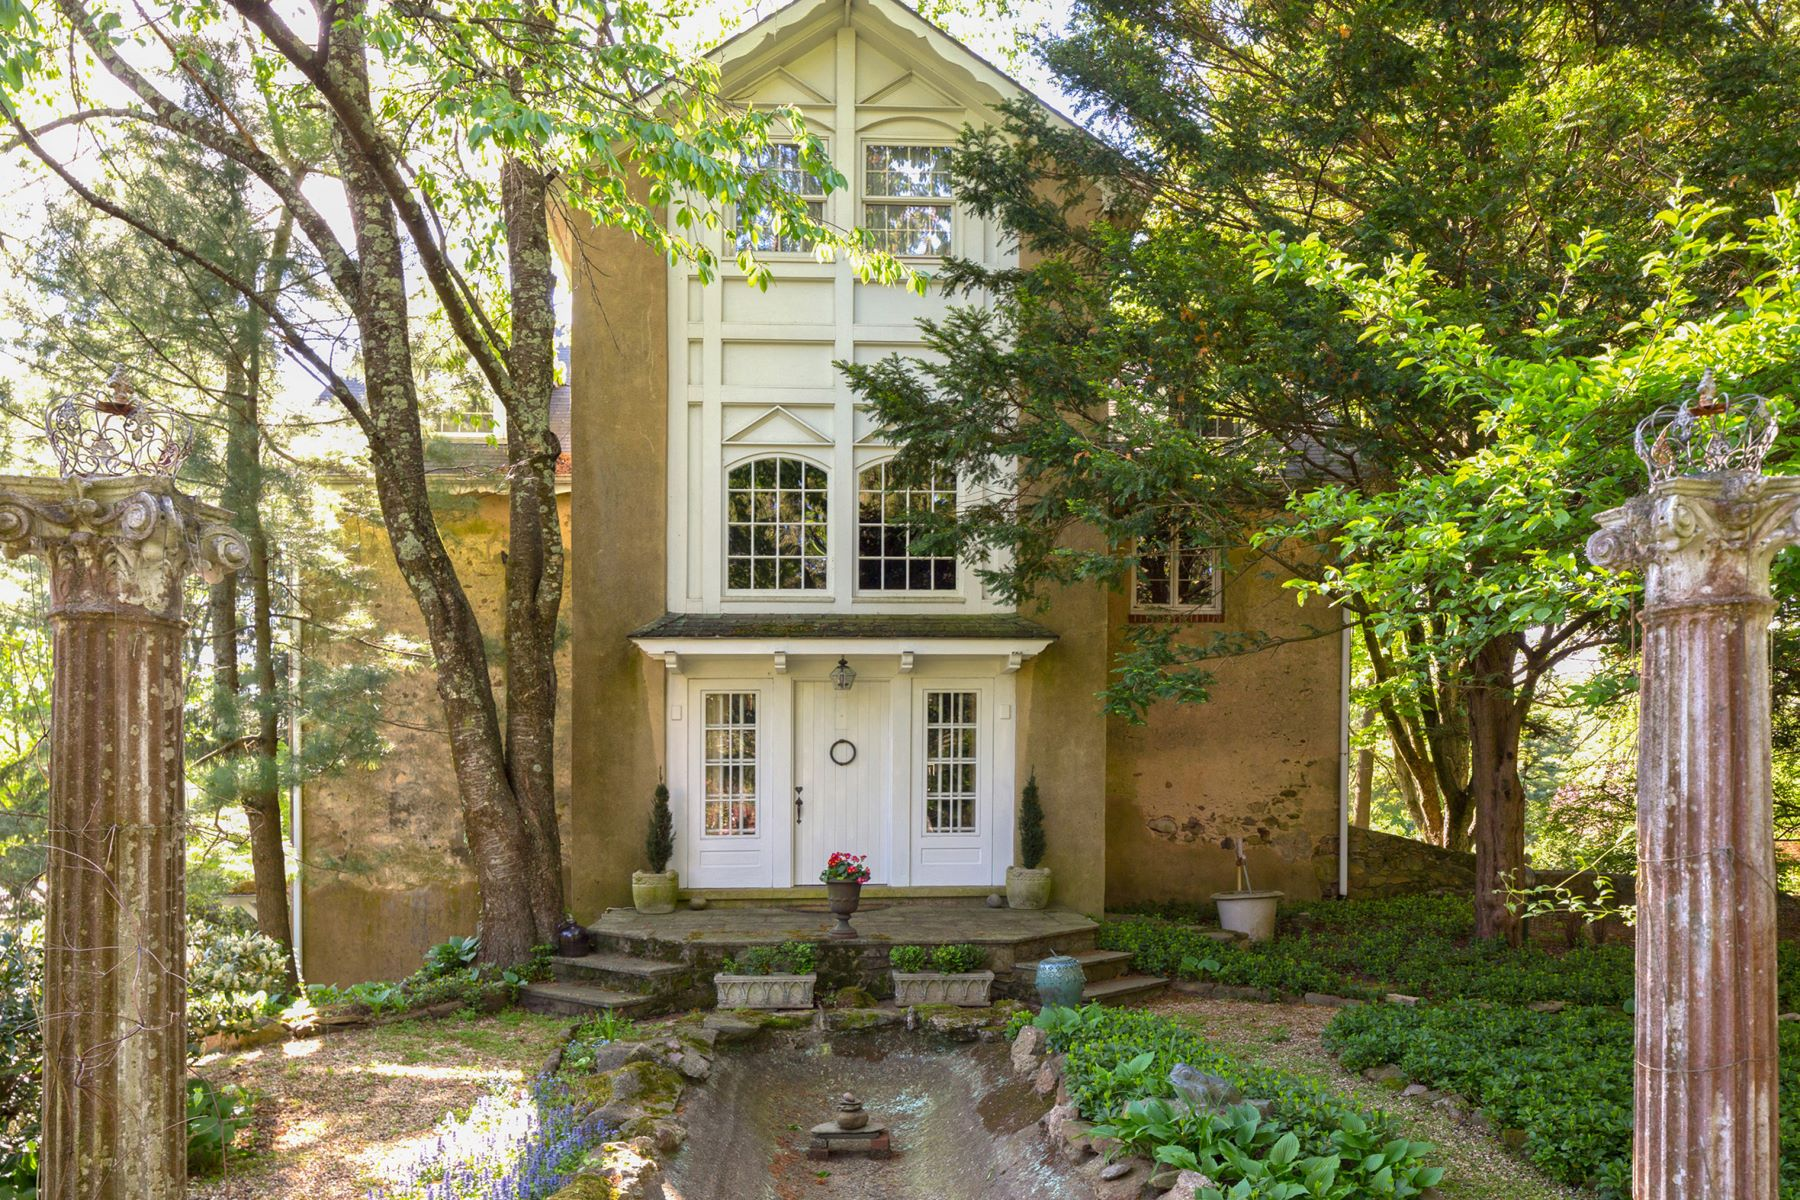 Single Family Homes for Sale at Weysmere 3136 BURNT HOUSE HILL RD Doylestown, Pennsylvania 18902 United States